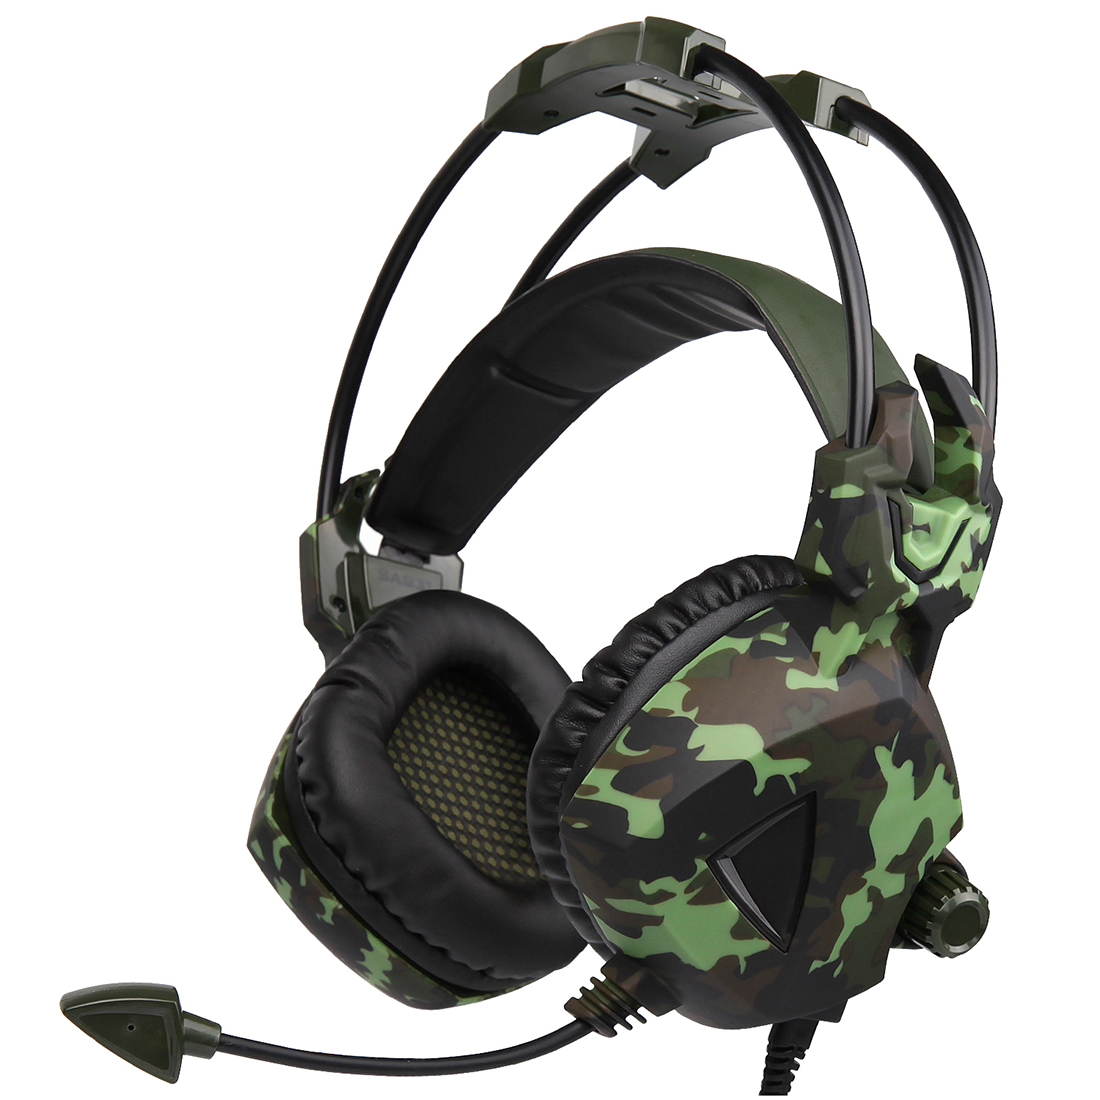 SA931 Gaming Headset works with PC,PS4,Laptop haiba hb49108